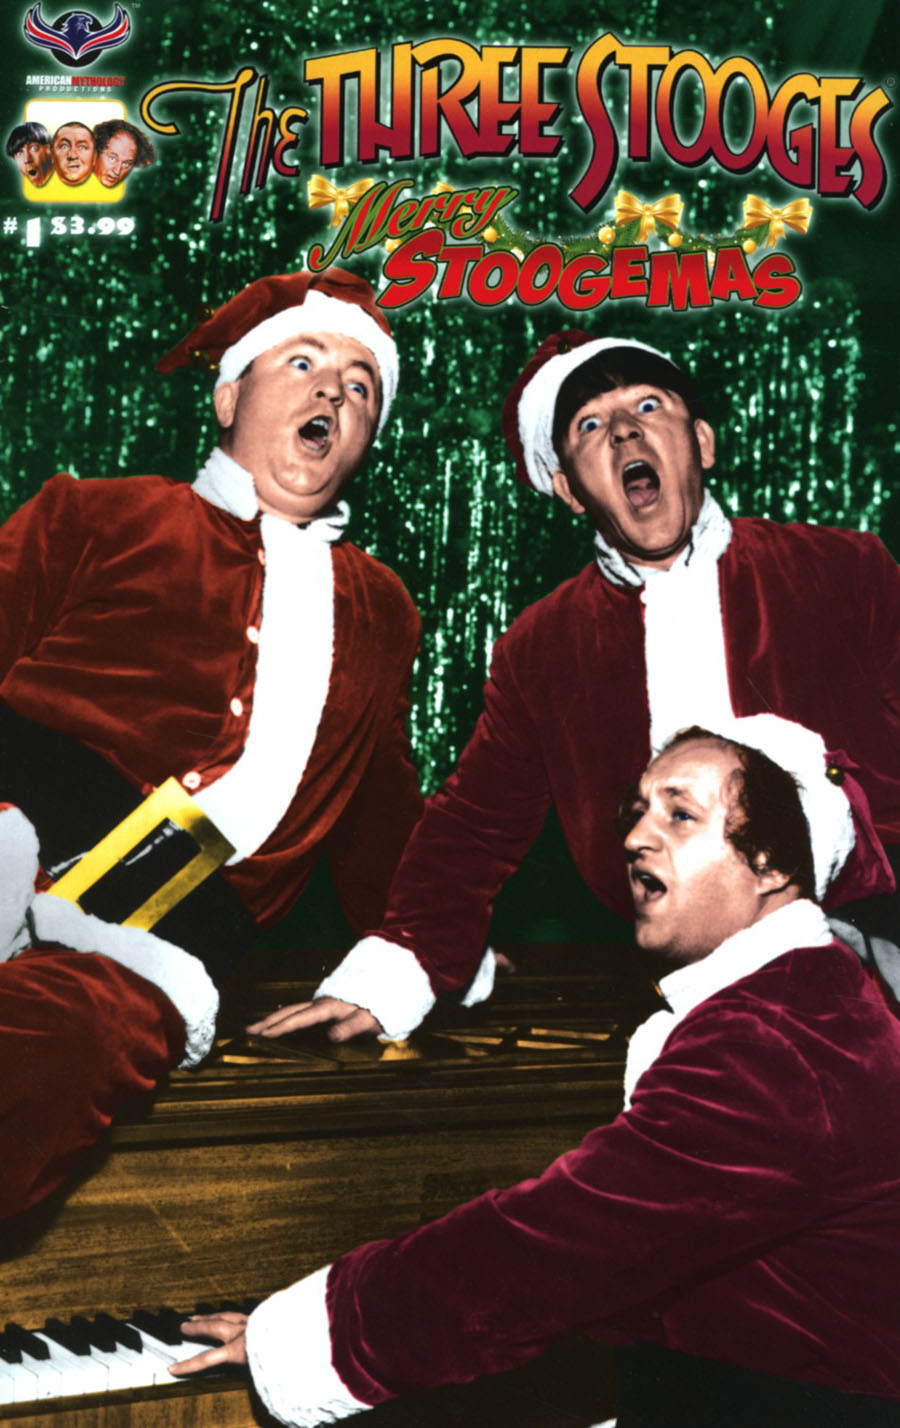 Three Stooges Merry Stoogemas Cover C Variant Photo Cover